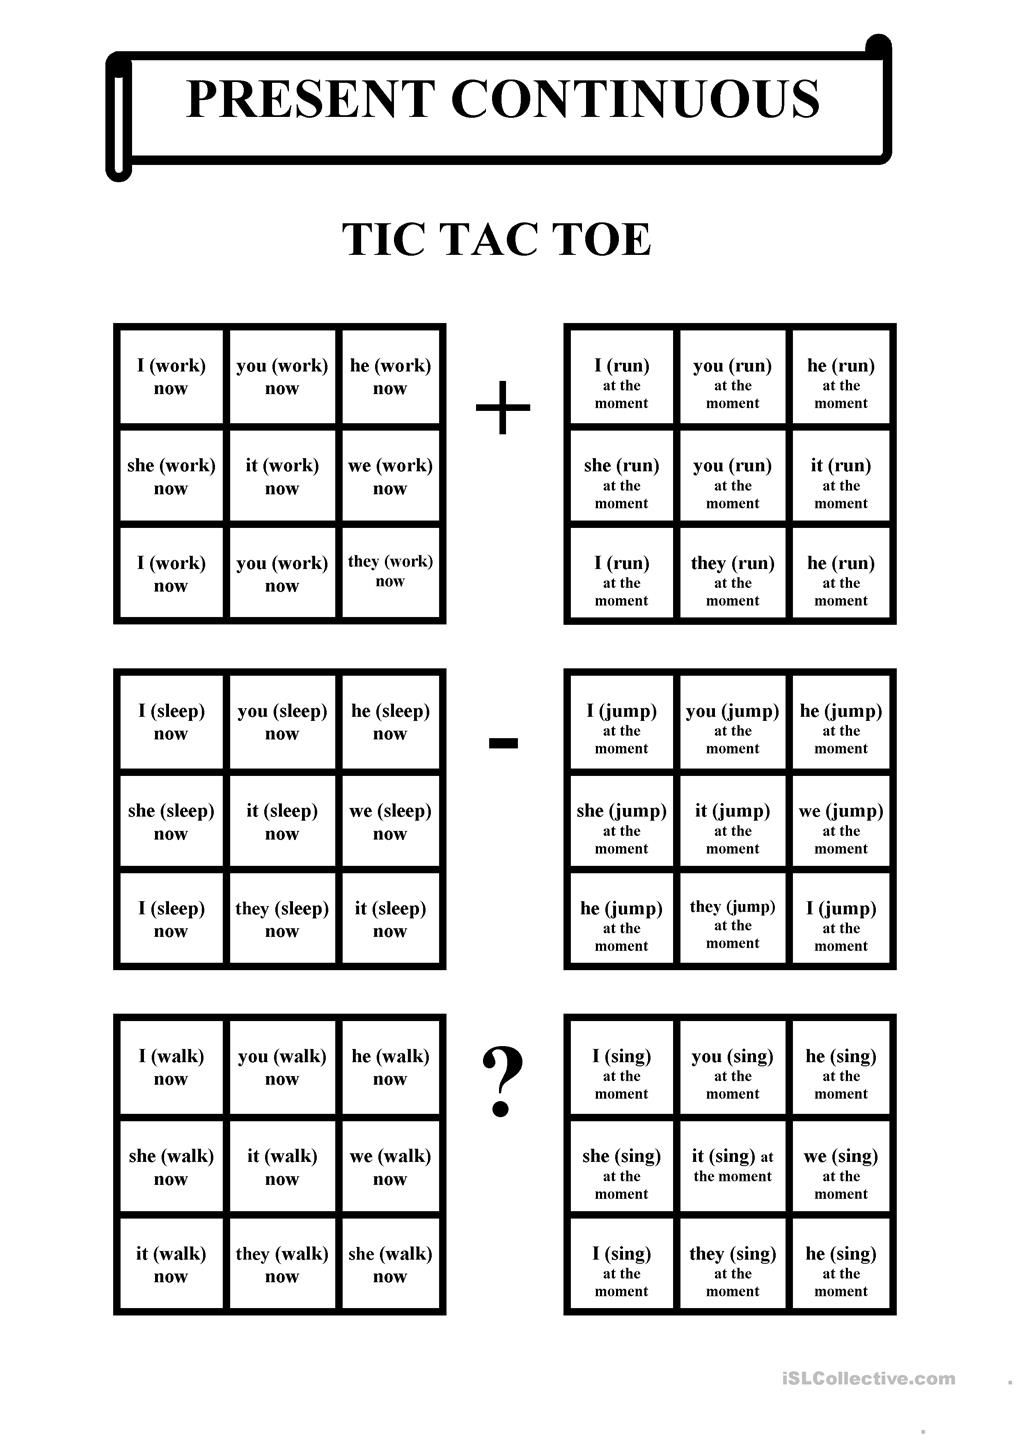 Tic tac toe present continuous esl grammar pinterest for Tic tac toe homework template